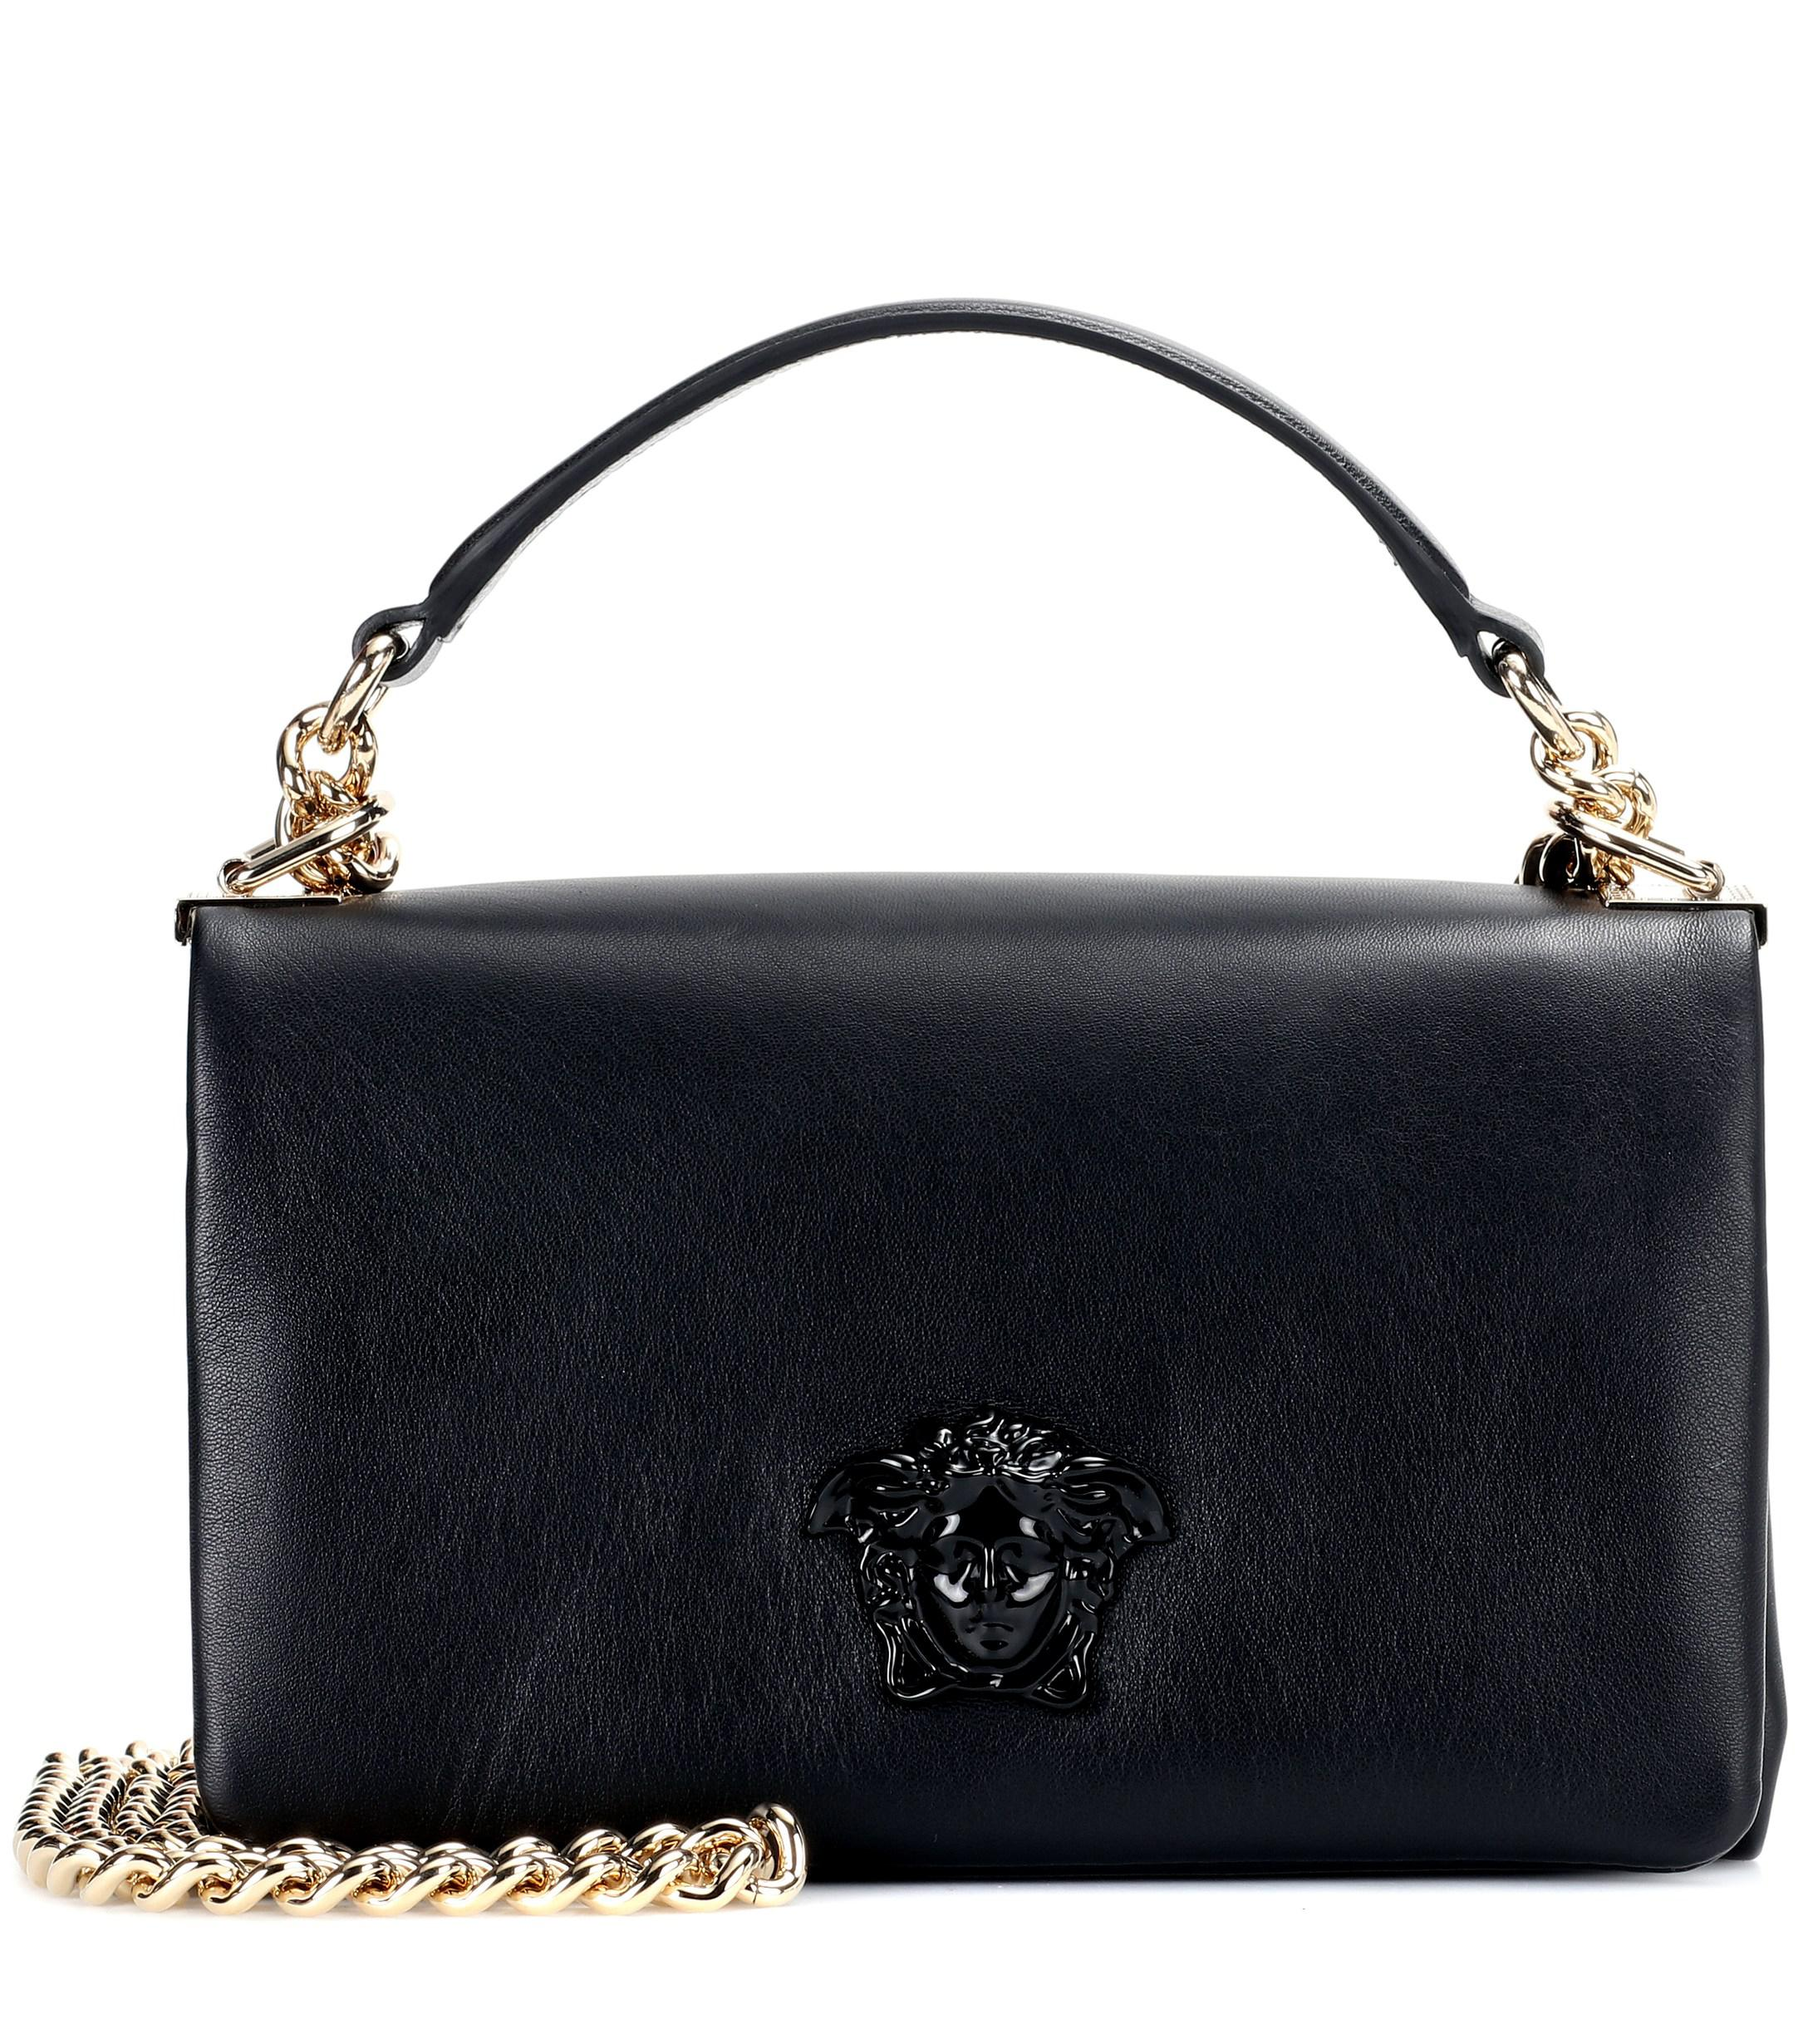 Versace Palazzo Leather Shoulder Bag in Black - Lyst 03a81f9003eed